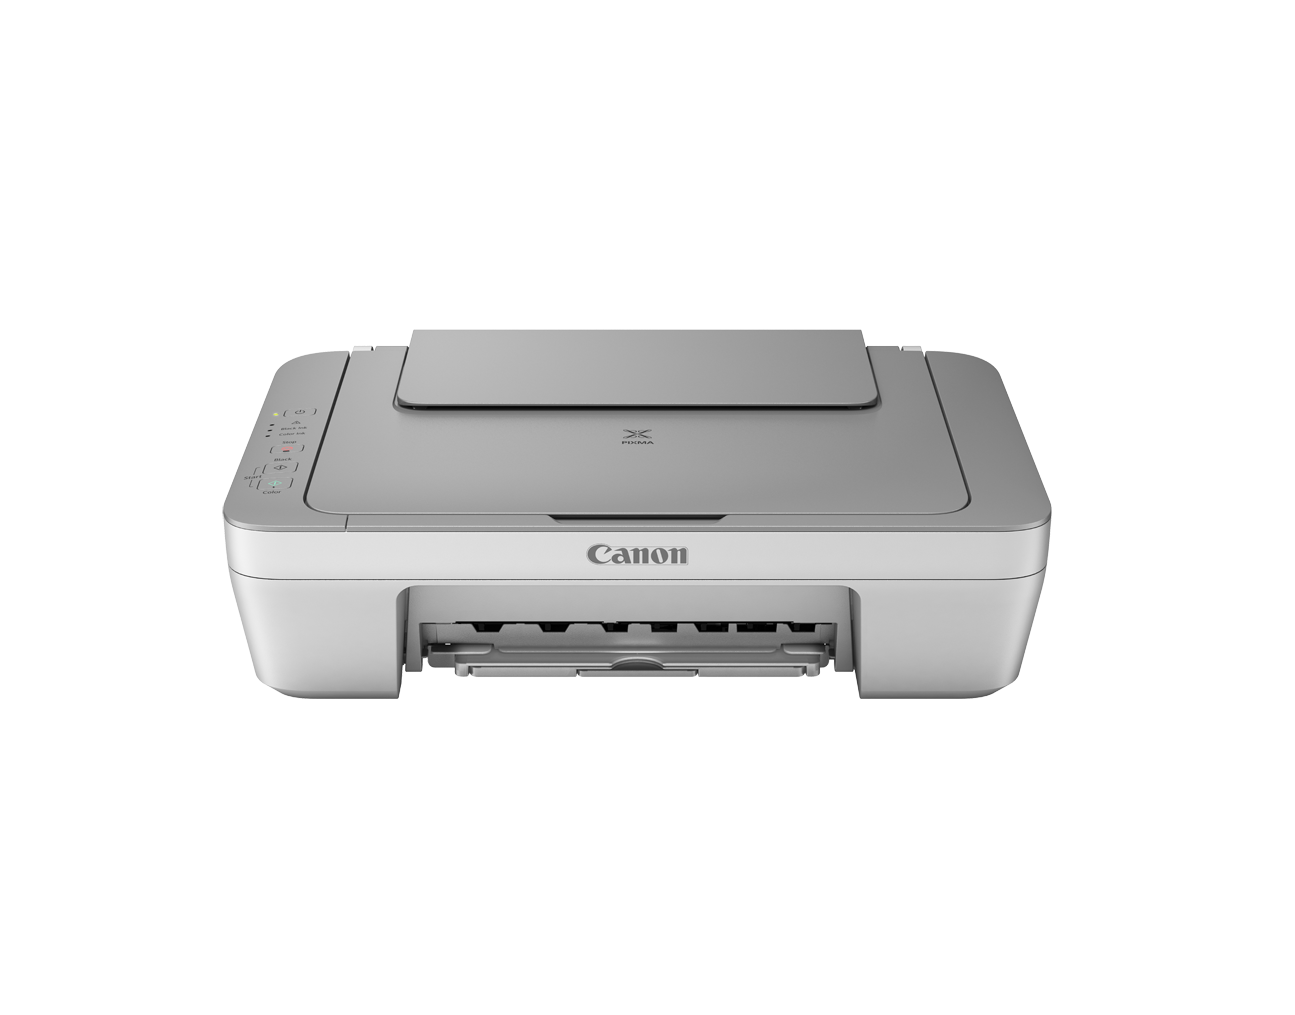 Canon%2Bpixma%2Bmg2410.png